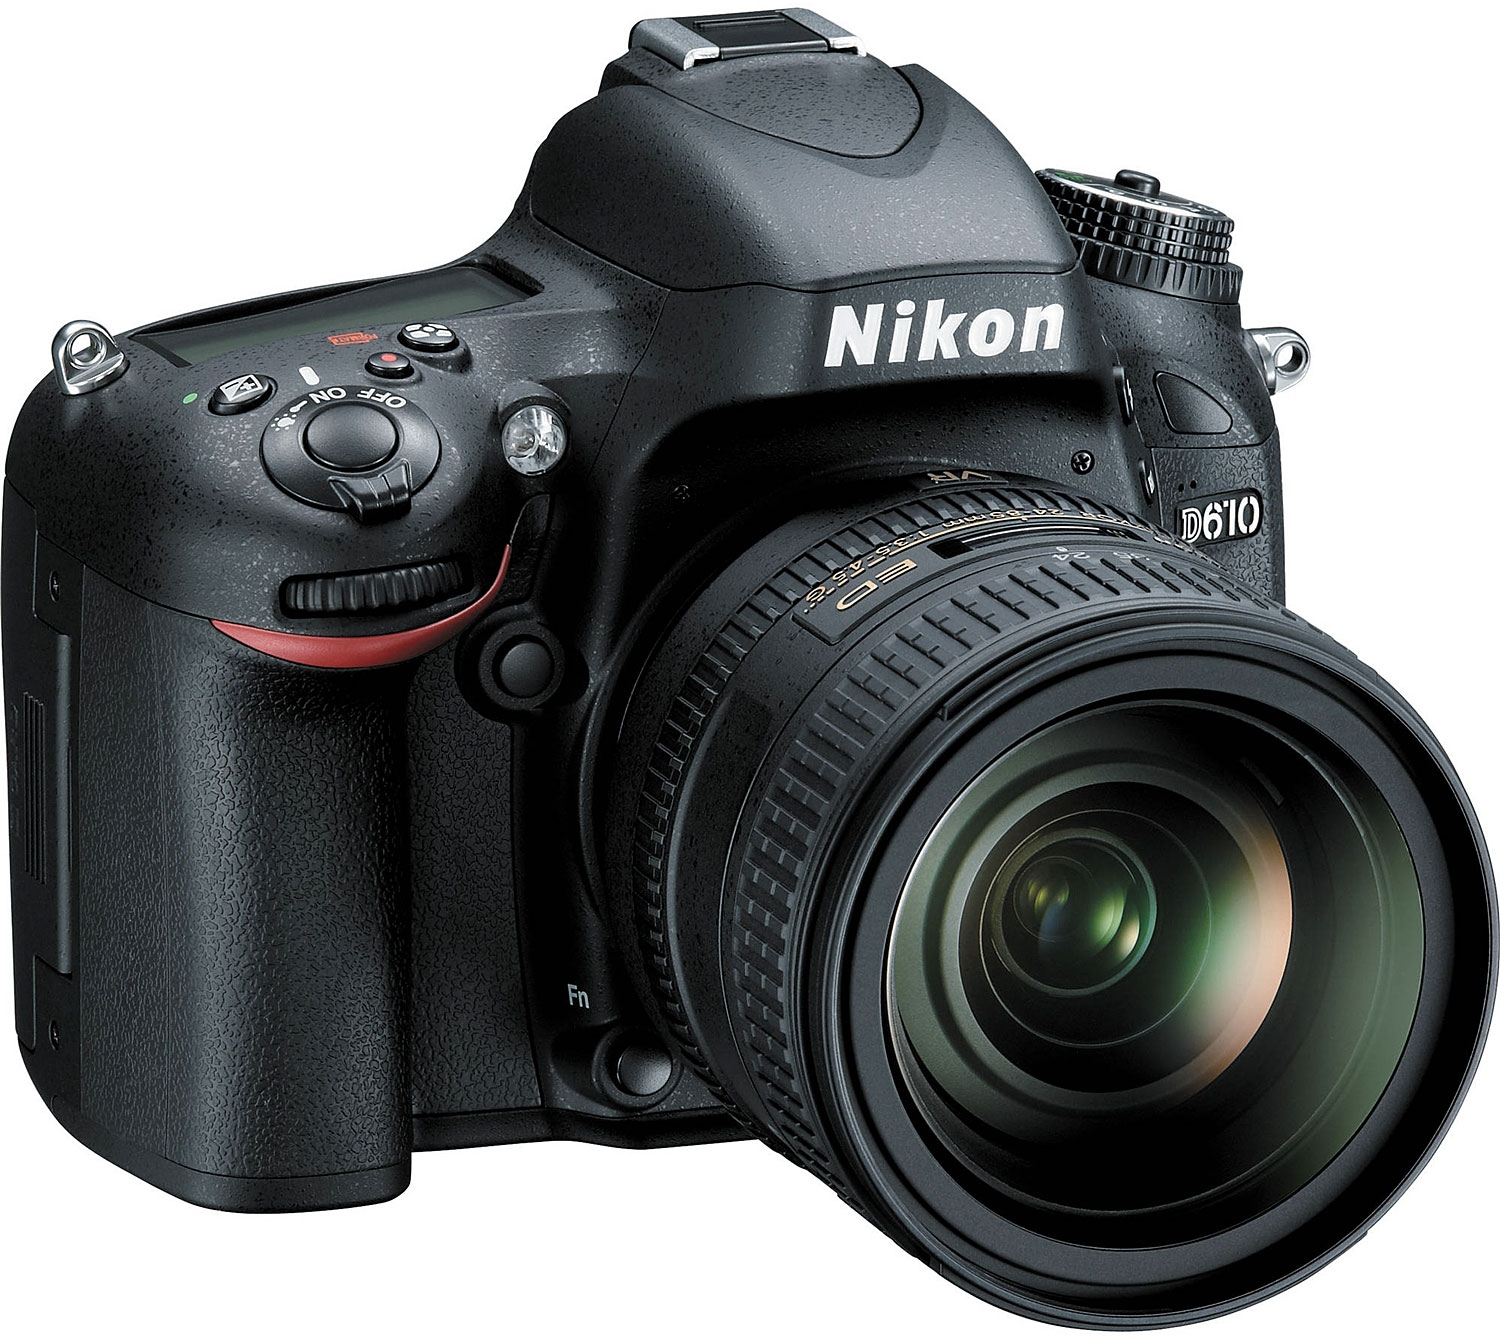 Image for Nikon D610 Digital SLR Camera With 24-85mm VR Lens Kit